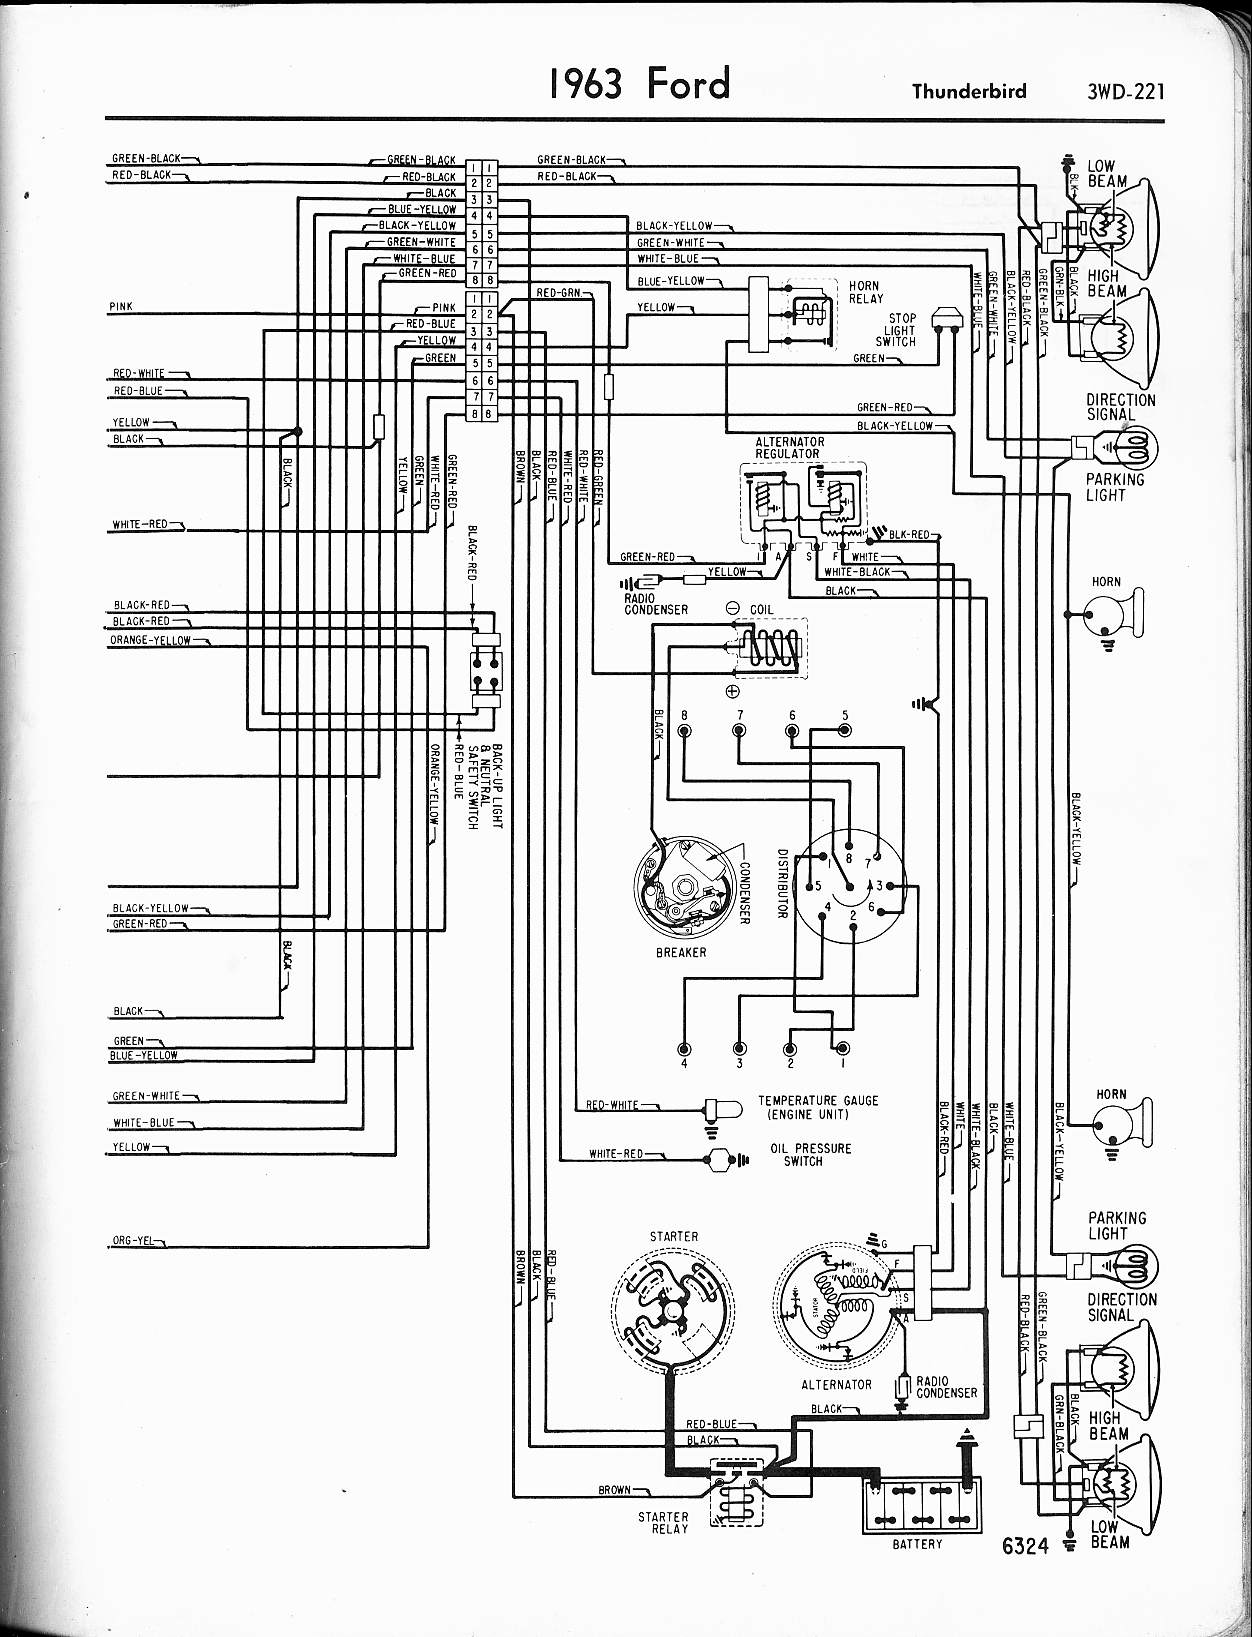 John Deere Backhoe Loader Diesel Wiring Diagram together with 2007 Jeep Wrangler Fuse Box besides 2007 Nissan Altima Fuse Box 2010 Nissan Altima Fuse Box Diagram Pertaining To 1998 Nissan Altima Fuse Box Diagram also Fordindex additionally Sears Craftsman Lawn Tractor Troubleshooting Help Please Lawnsite Within Lt2000 Wiring Diagram. on ford alternator circuit